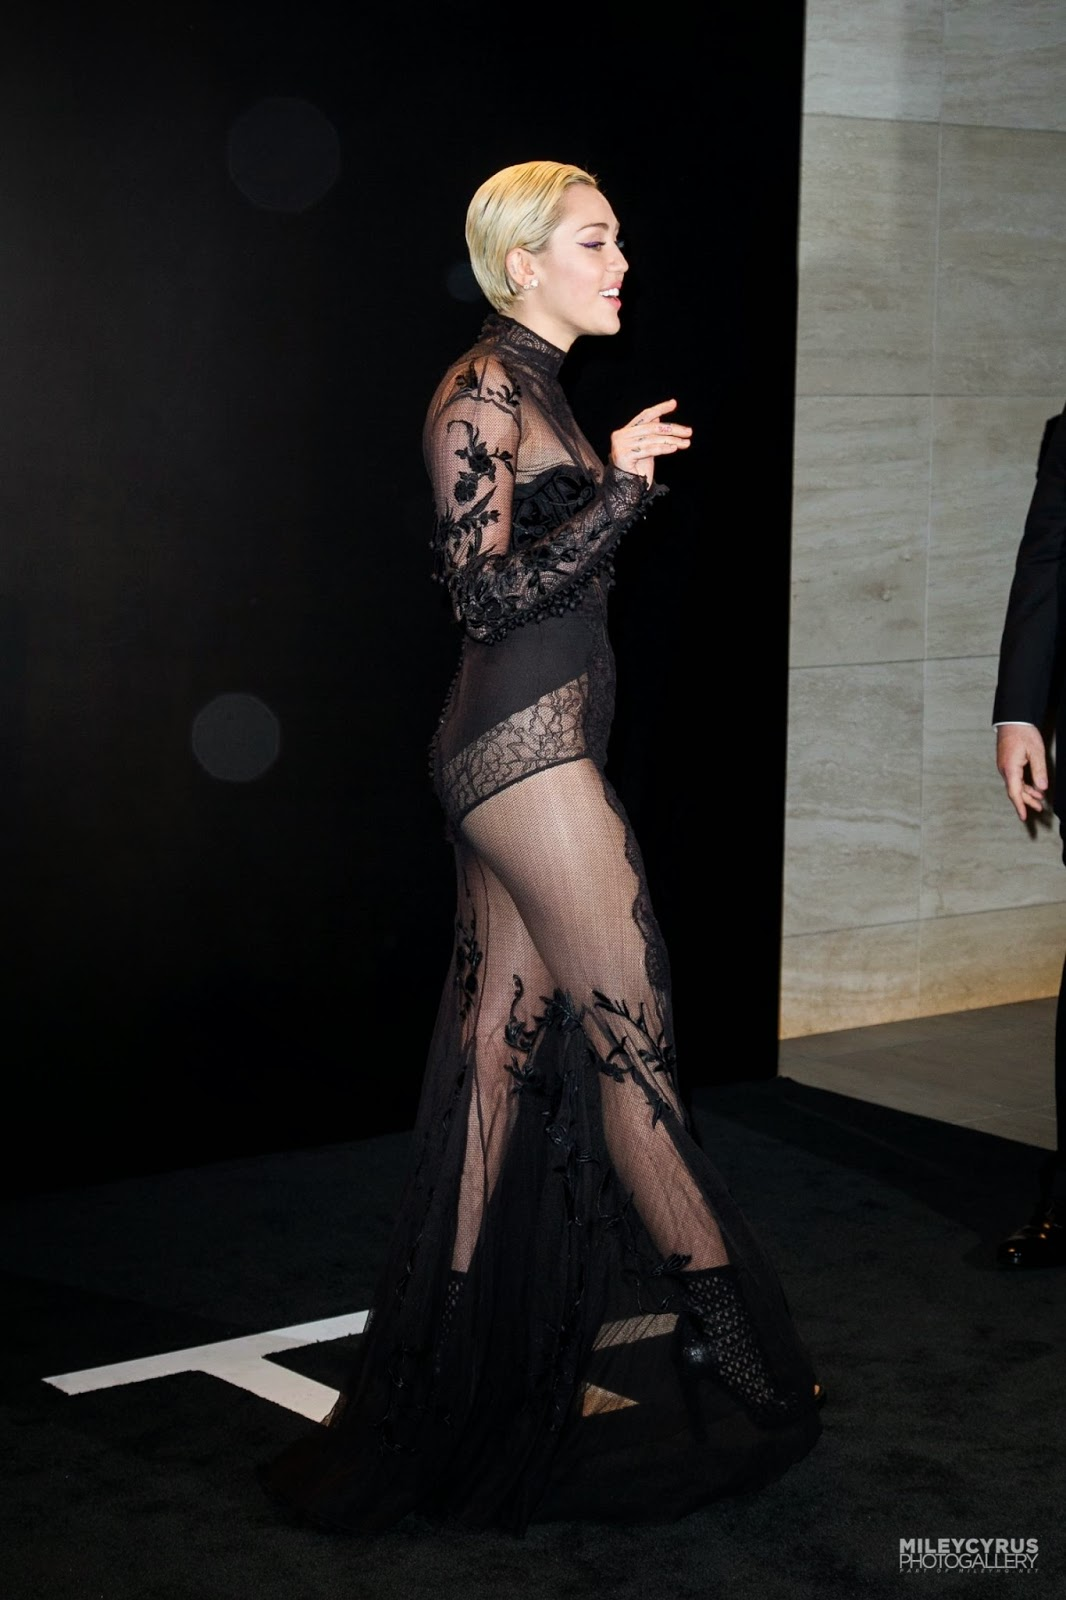 Singer, Actress: Miley Cyrus - at Tom Ford A/W 2015 Womenswear Collection Presentation in LA